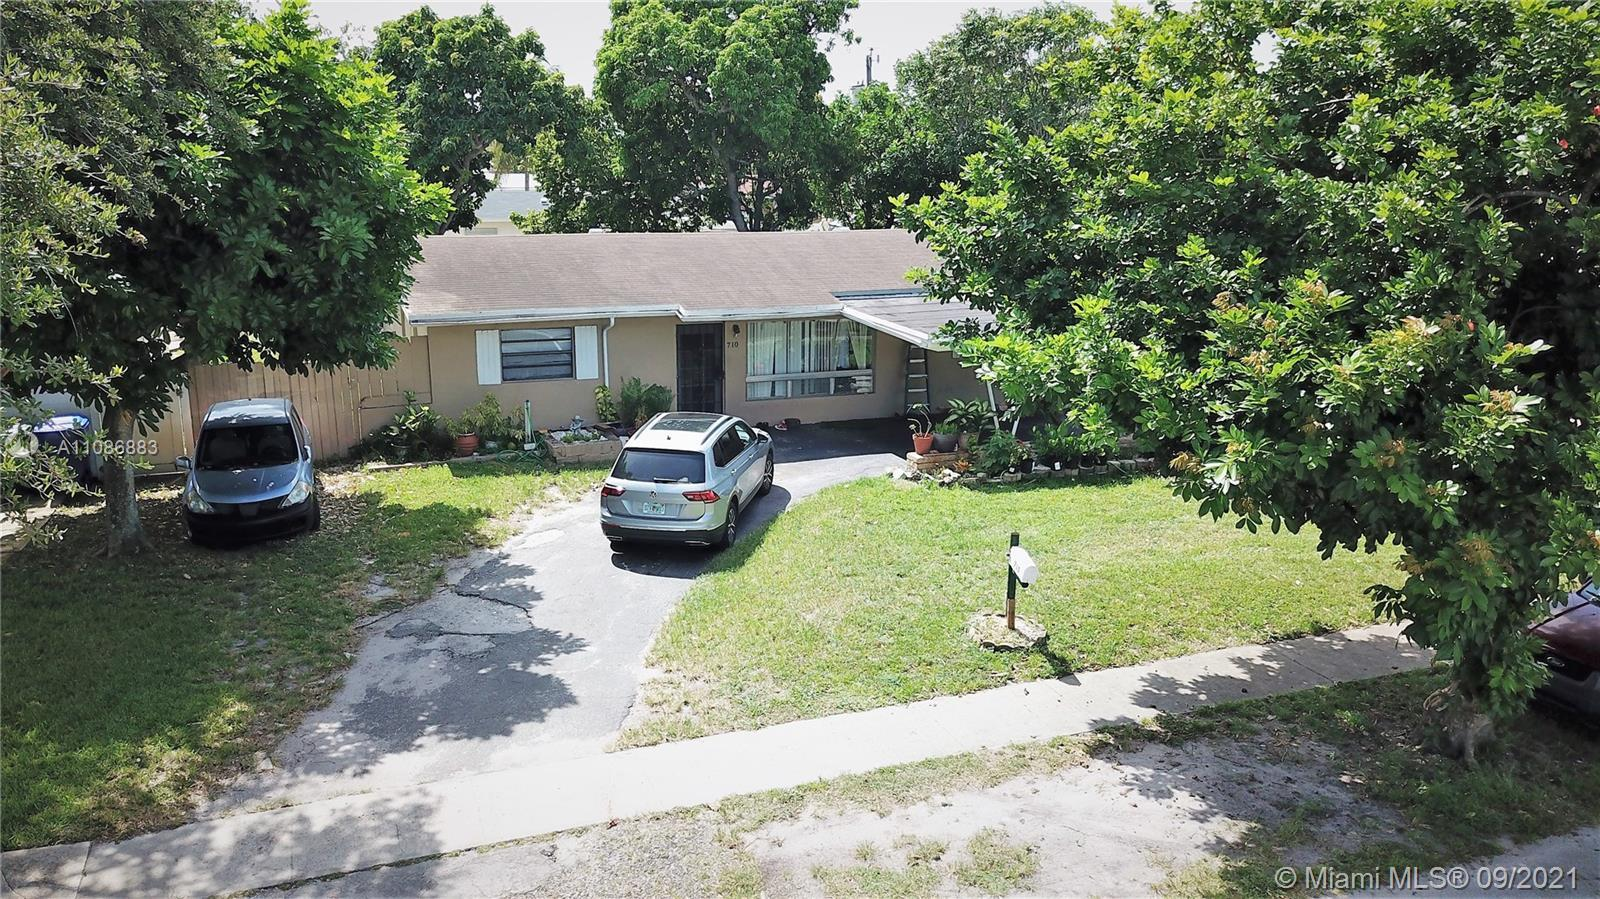 Perfectly Located, 3 Bedrooms, 2 Bathrooms, Florida room, 45x12 Screened Patio, one car Carport, Man